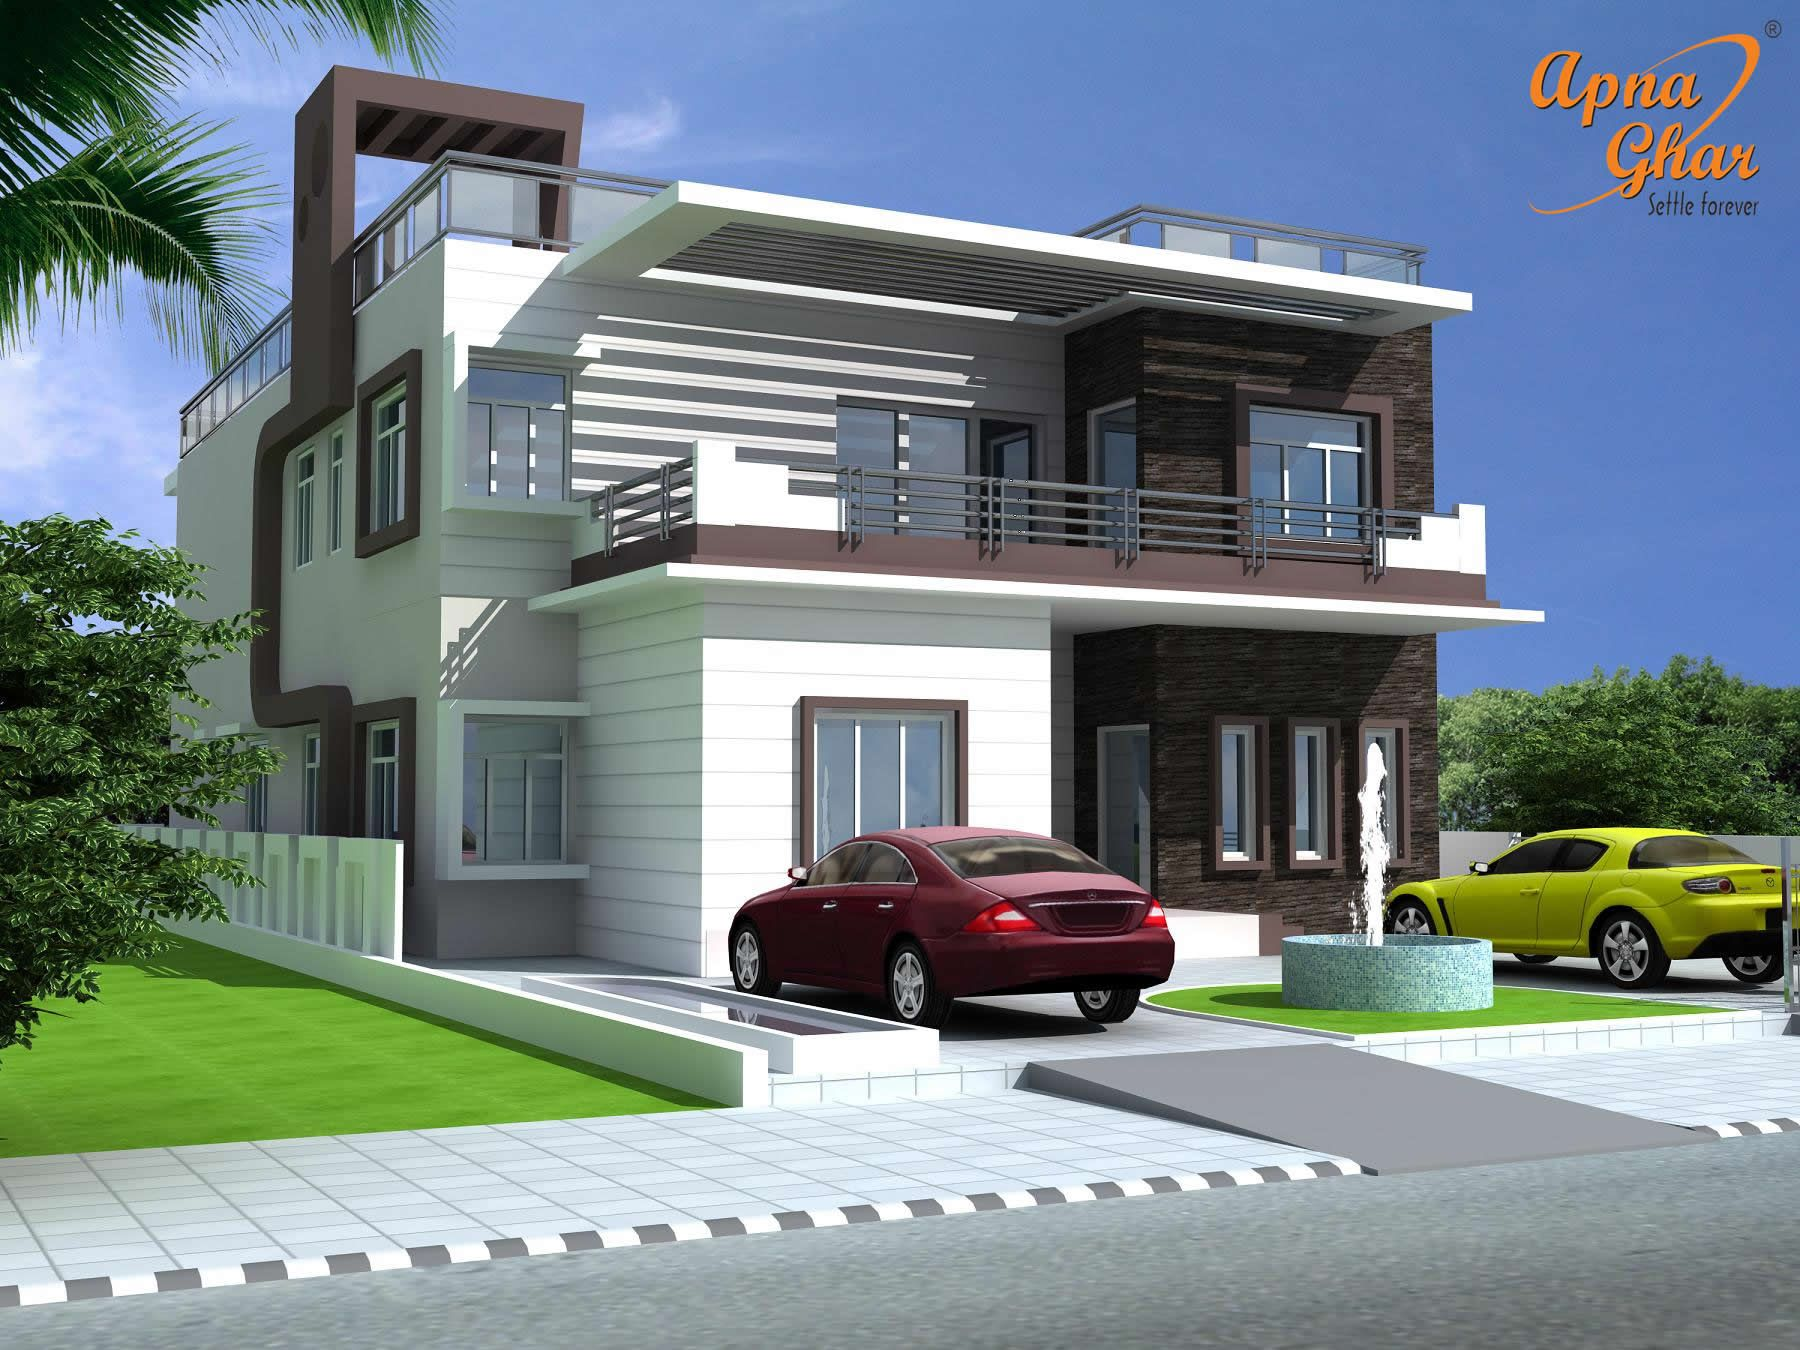 6 Bedrooms Duplex House Design In 390m2 (13m X 30m) Click